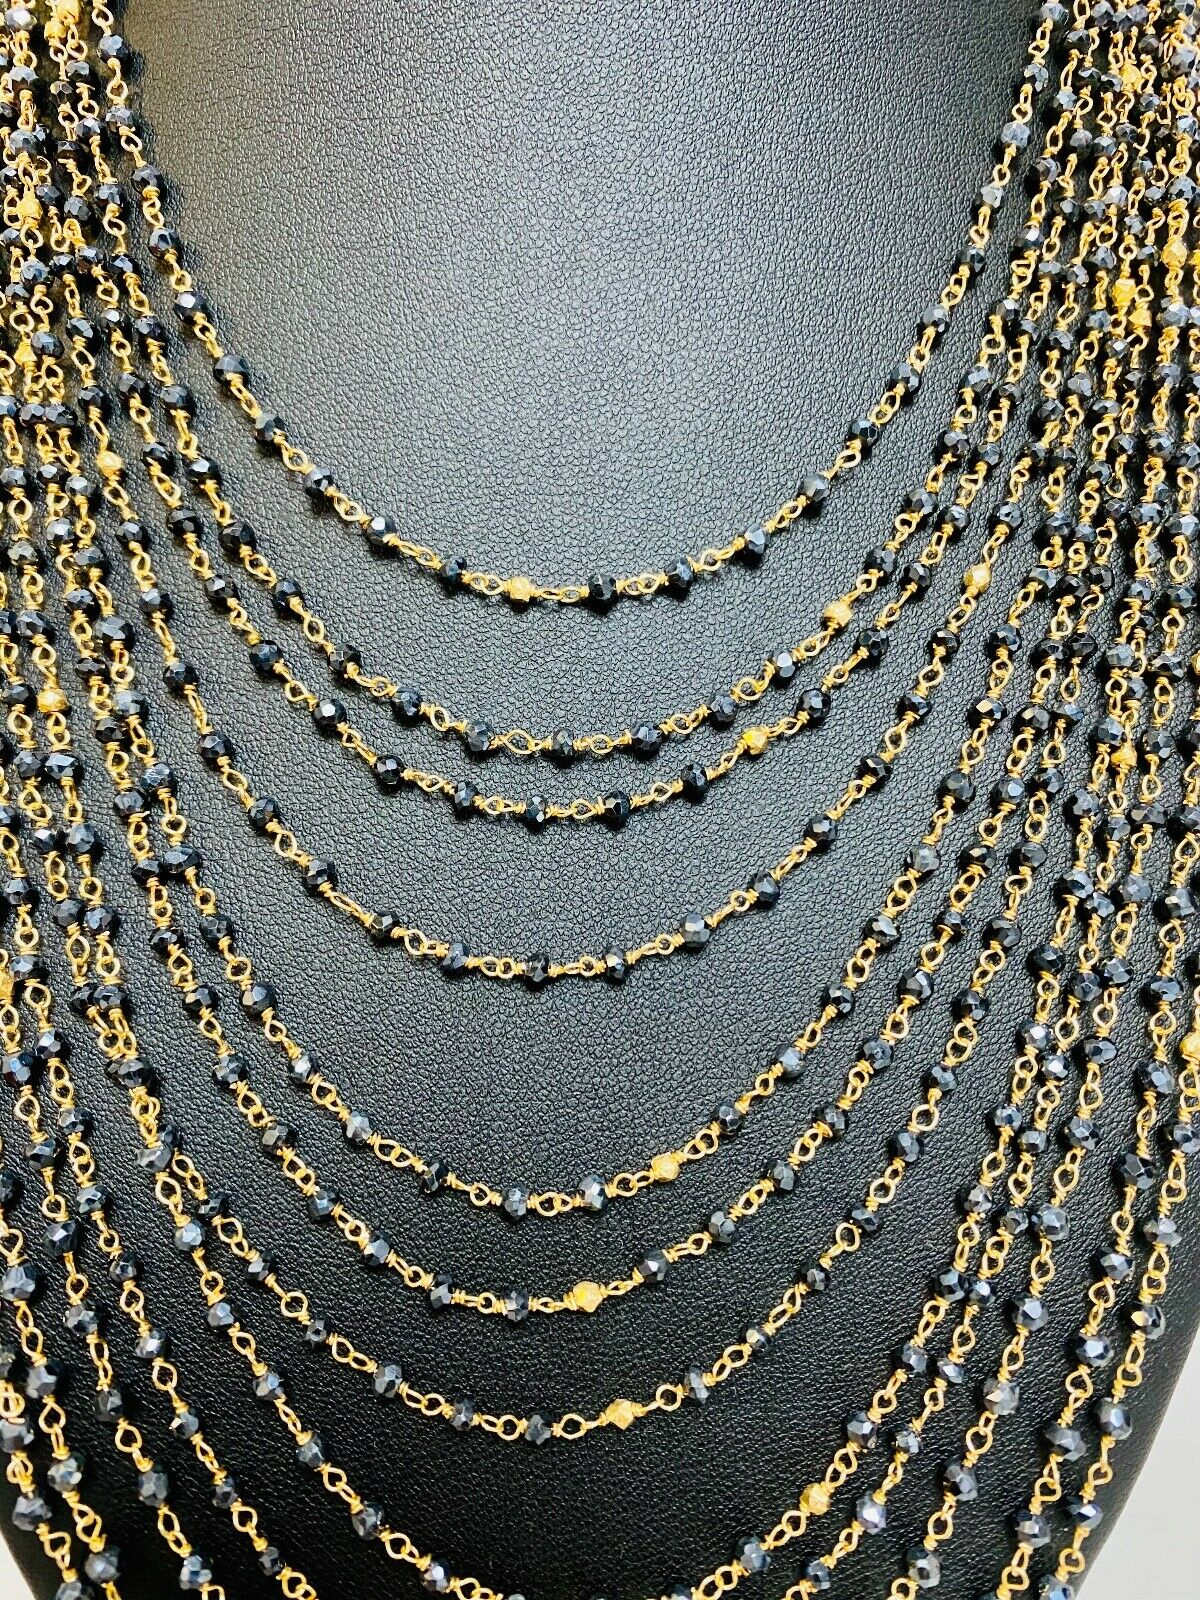 Made to Order Ombre Necklace with Genuine Spinel Stones Gemstone Row Necklace in Gold